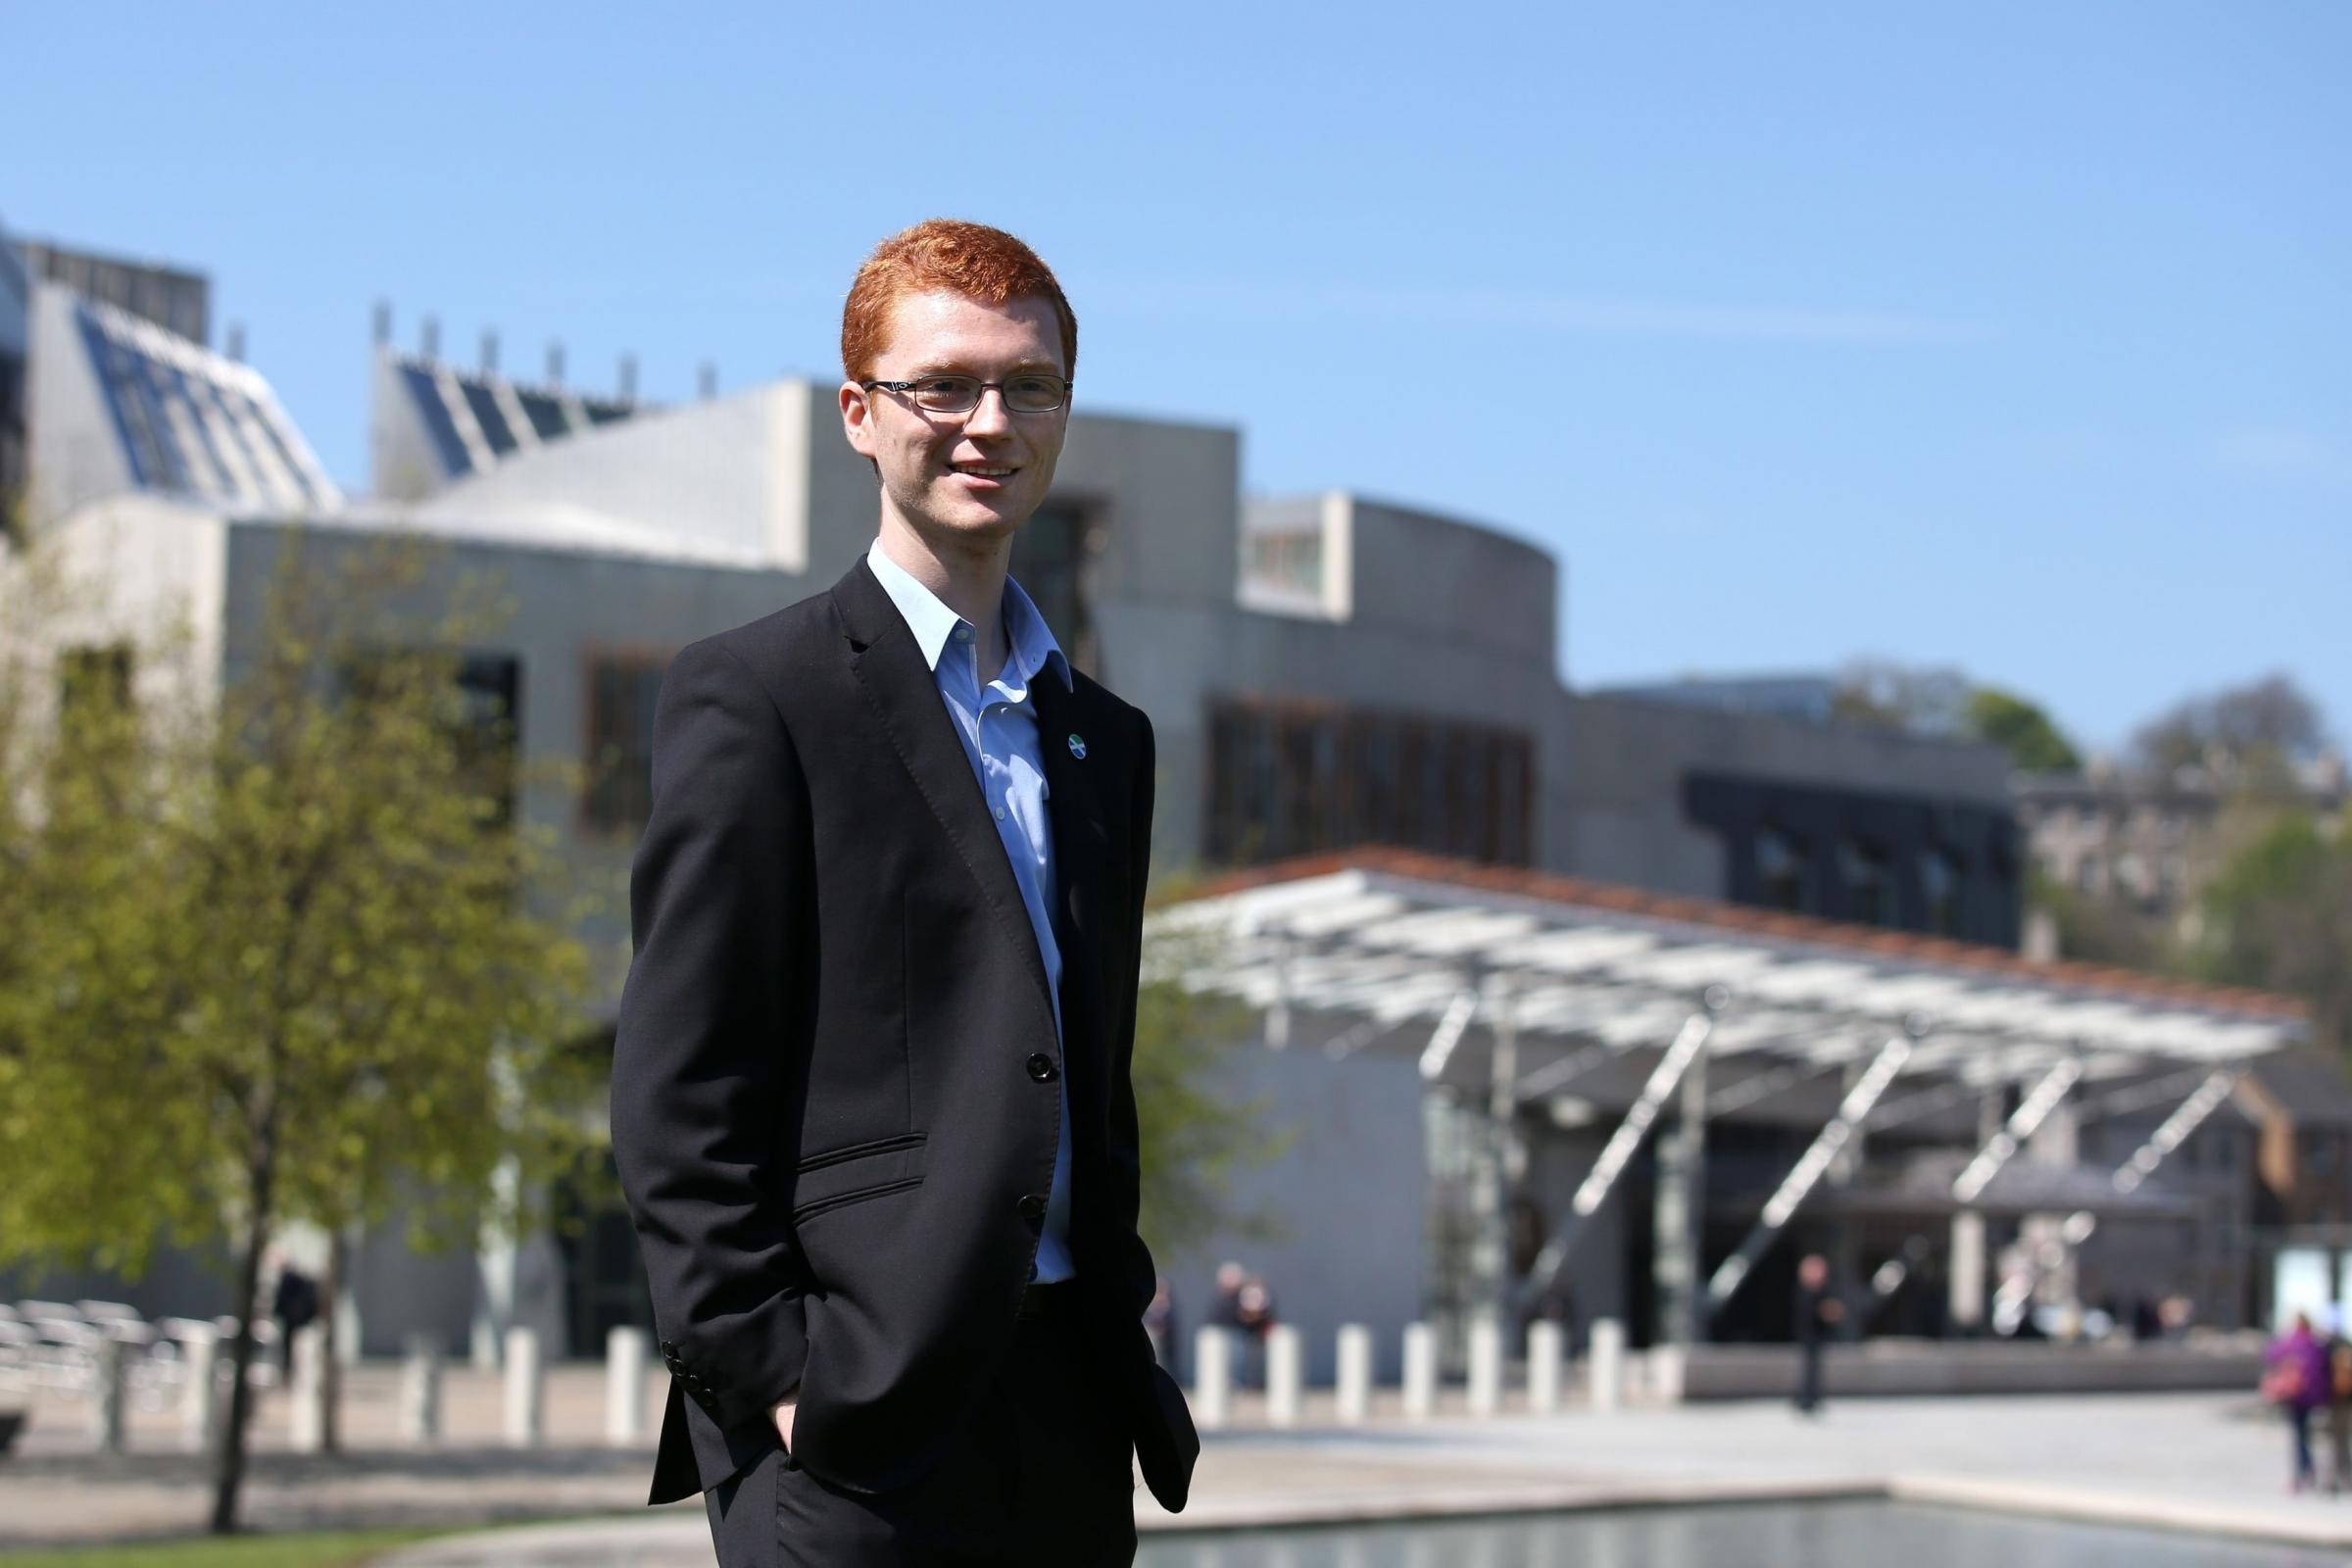 Ross Greer: We will be ready to bring our unique case to a new independence campaign